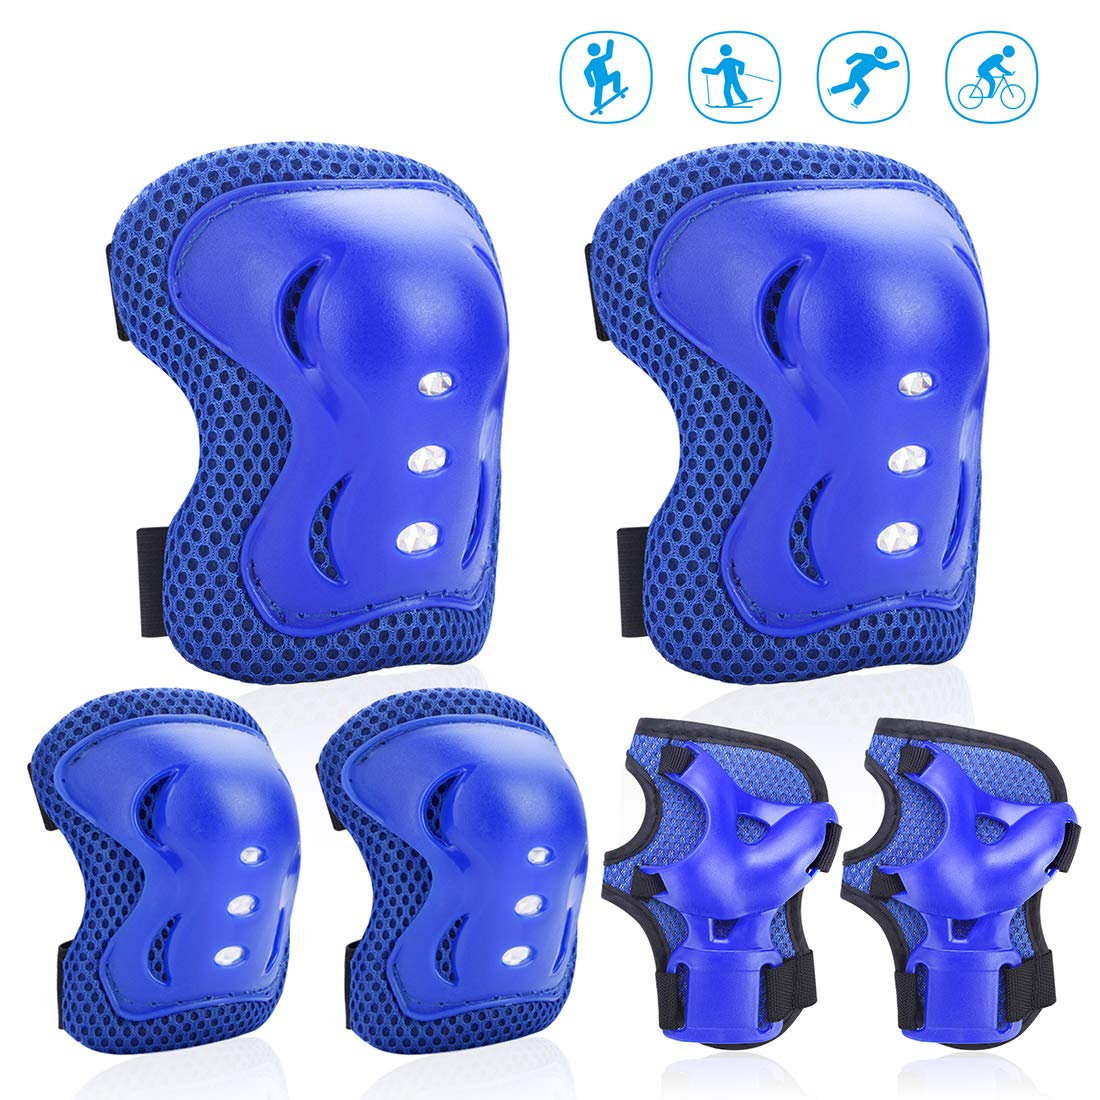 Feeke Knee Pads for Kids Knee and Elbow Pads Kids Protective Gear Adjustable Elastic Strap for Rollerblading Skateboard Cycling Skating Bike Scooter